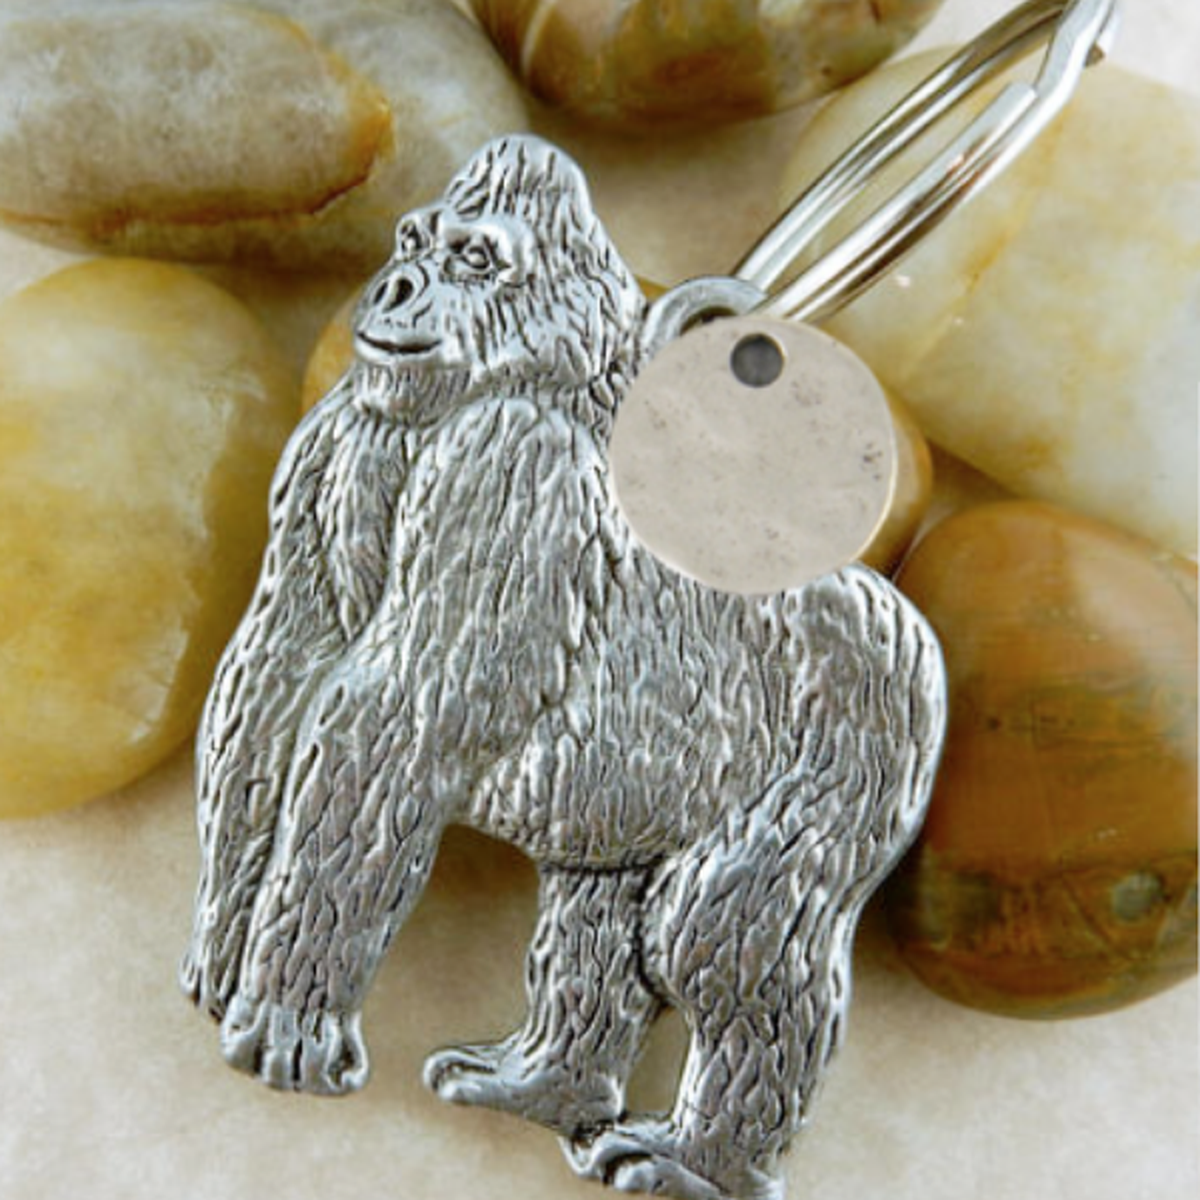 The ellen Fund Gorilla Keychain